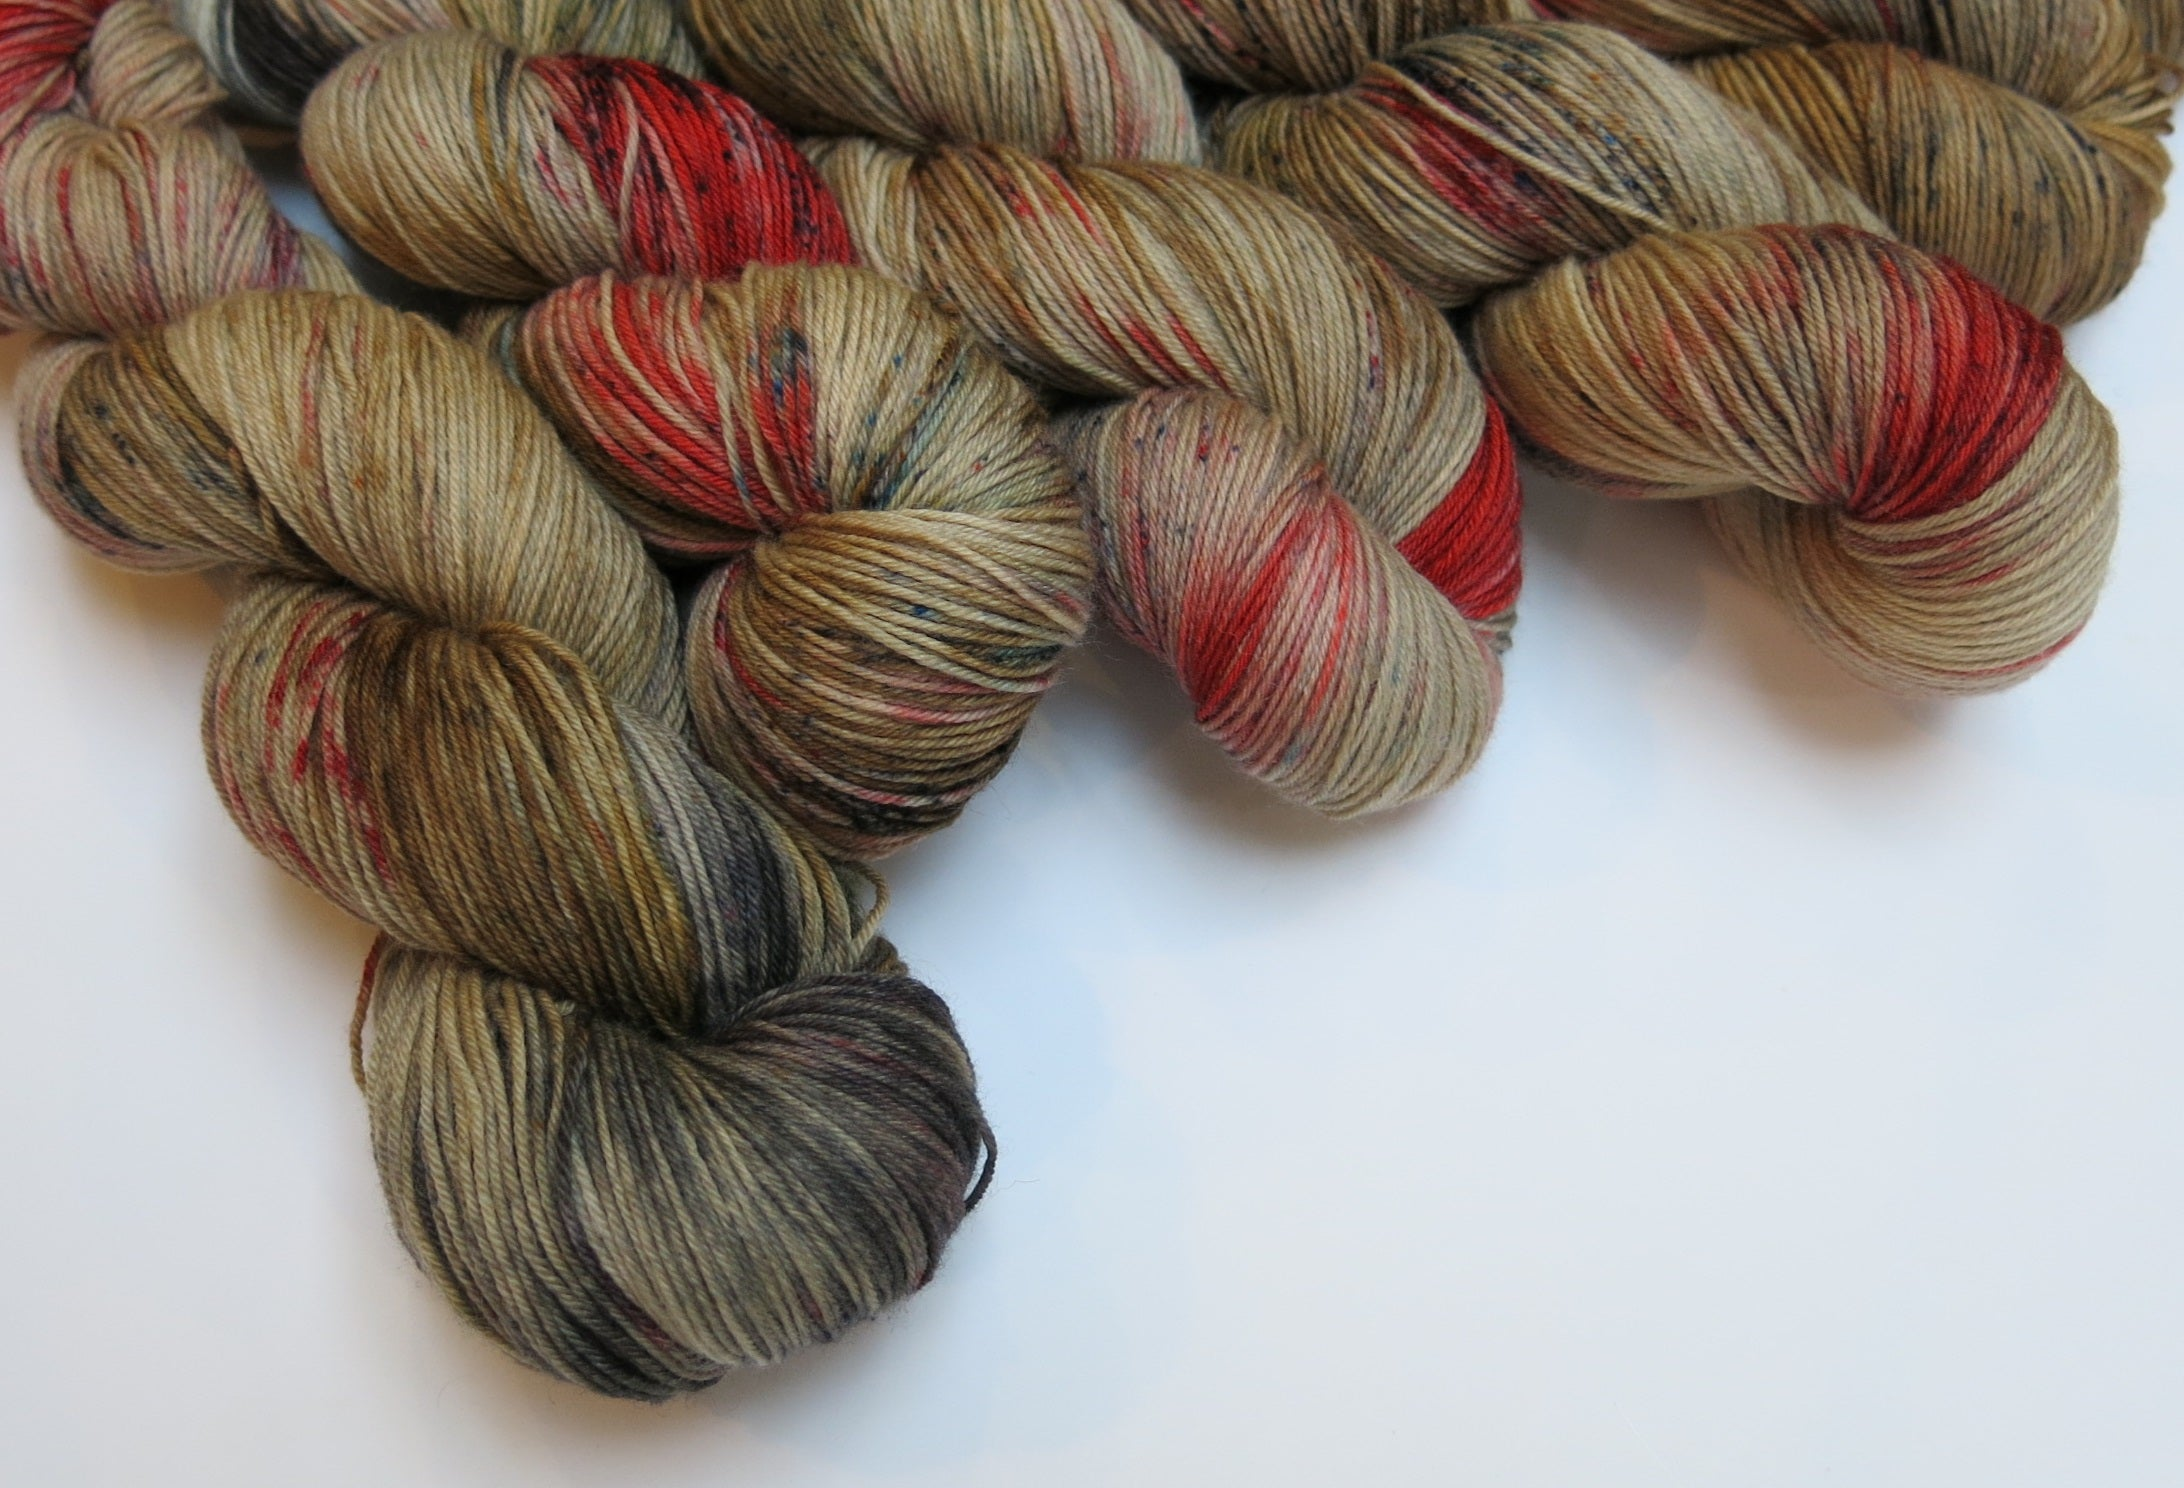 indie dyed brwon and red yarn skeins with speckles